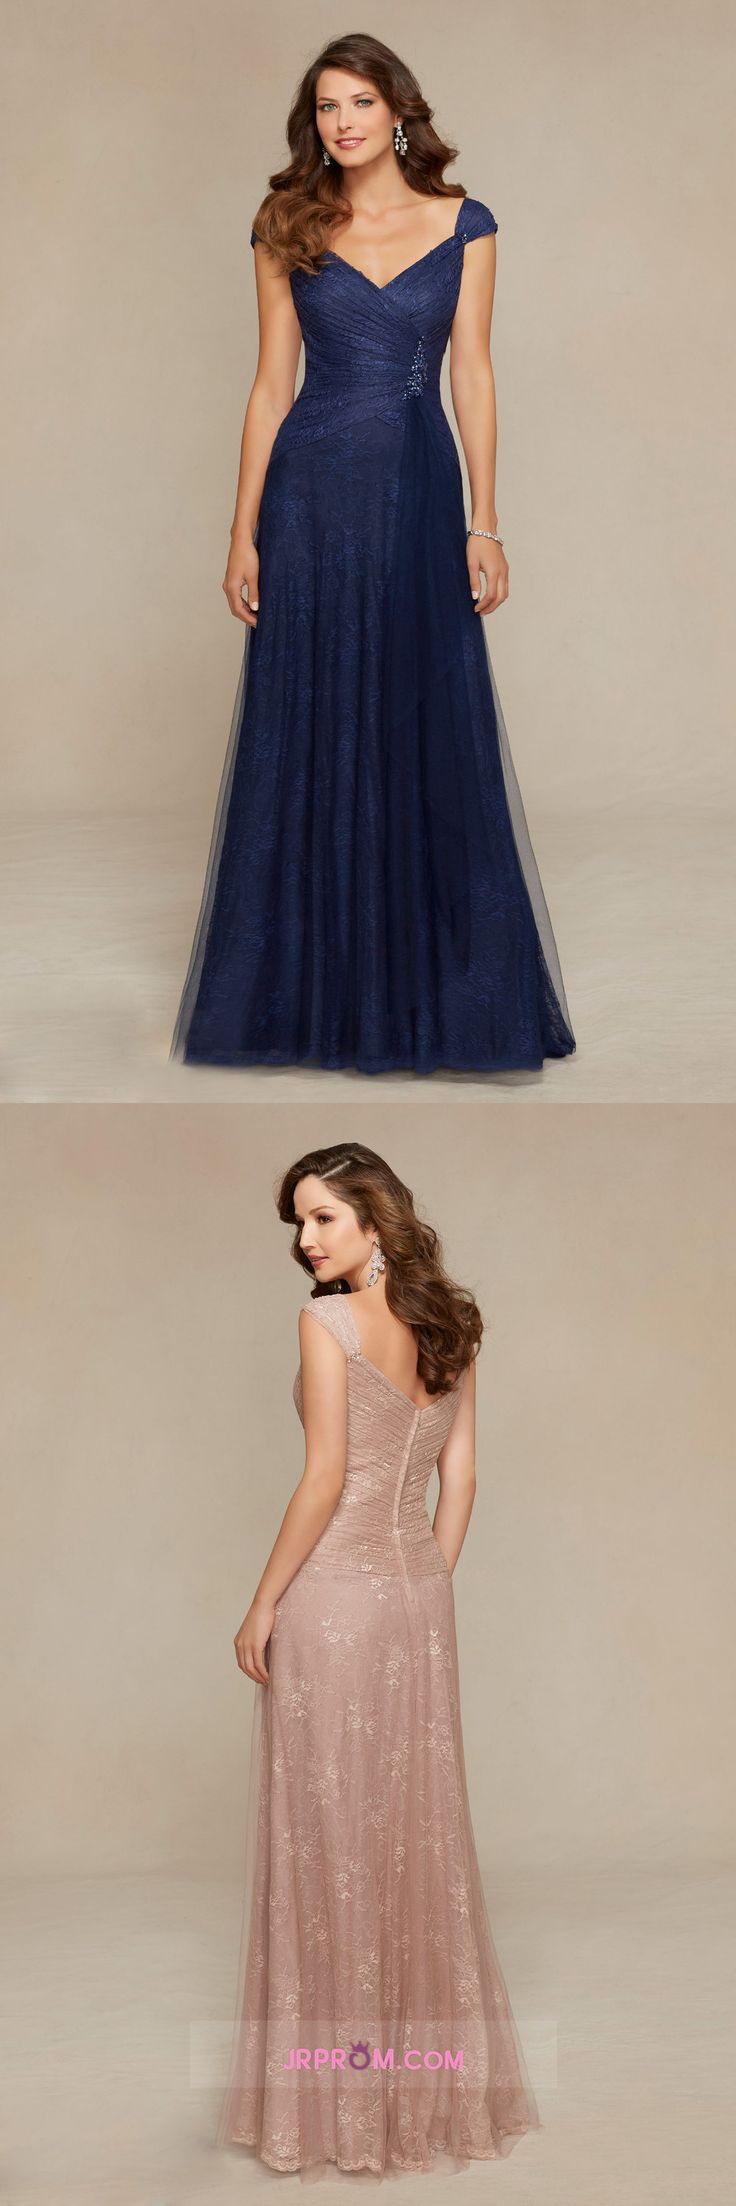 Off The Shoulder A Line Evening Dresses With Beads And Ruffles Tulle & Lace